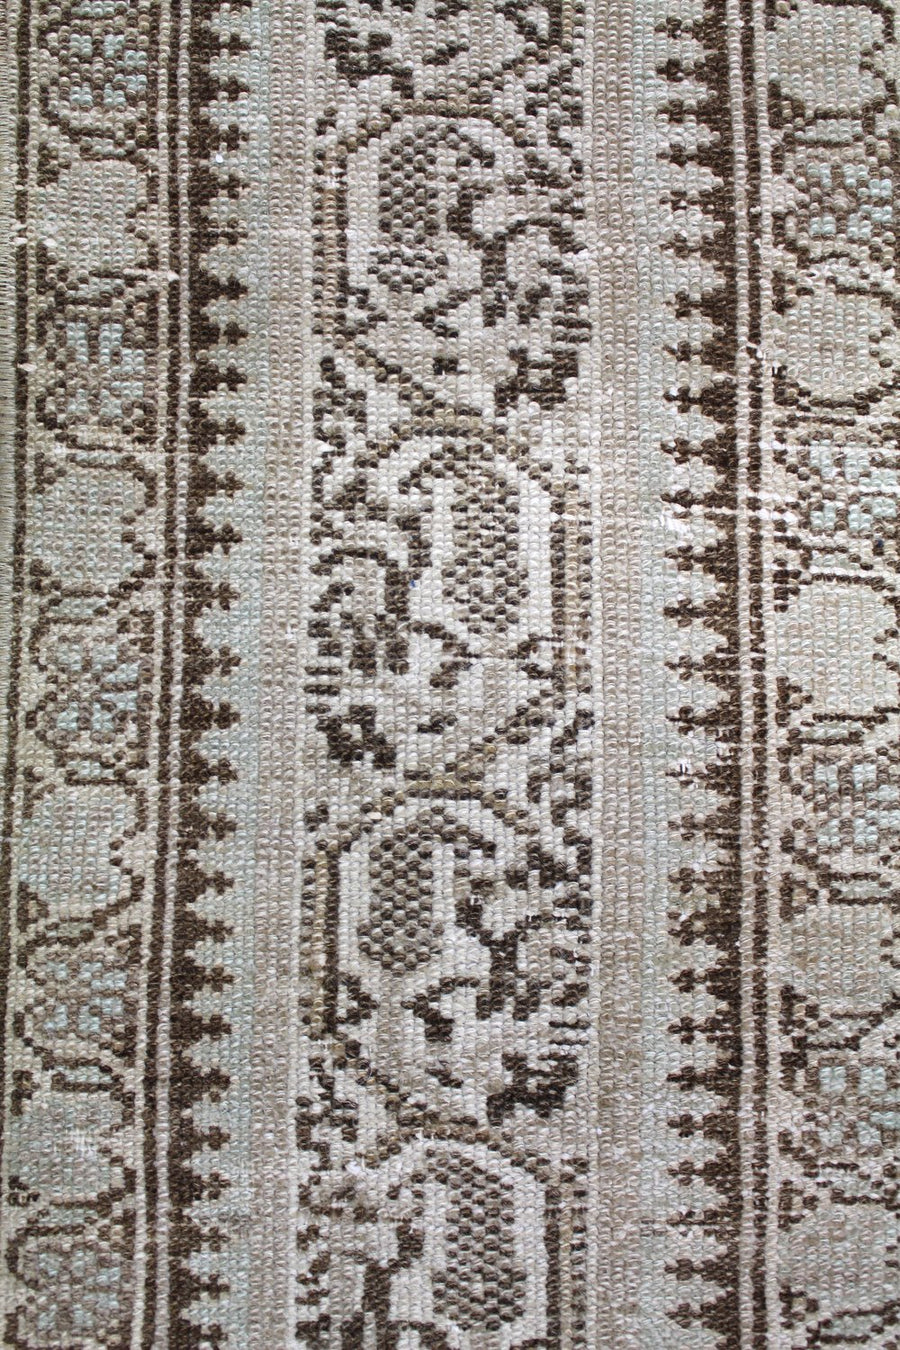 Malayer Handknotted Rug, J58813